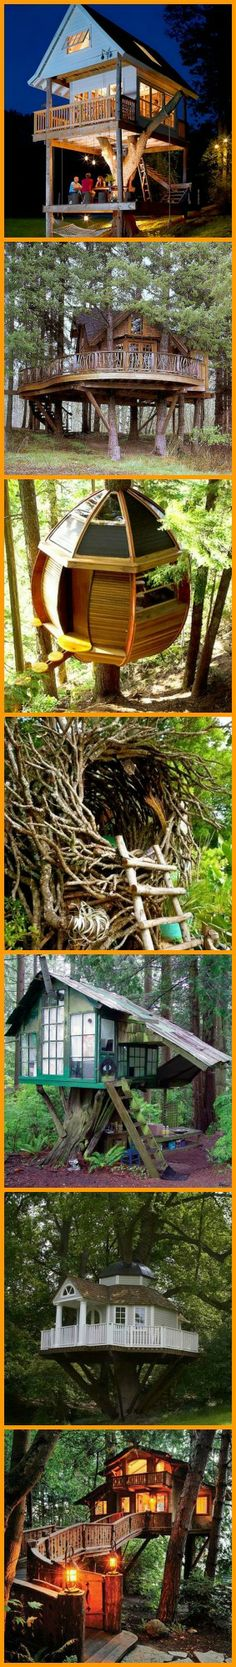 """Do these images make the child in you say """"I want one!"""" Check out our collection of tree houses in this album here http://theownerbuildernetwork.co/vo53 Which of these fulfills your childhood dream?"""